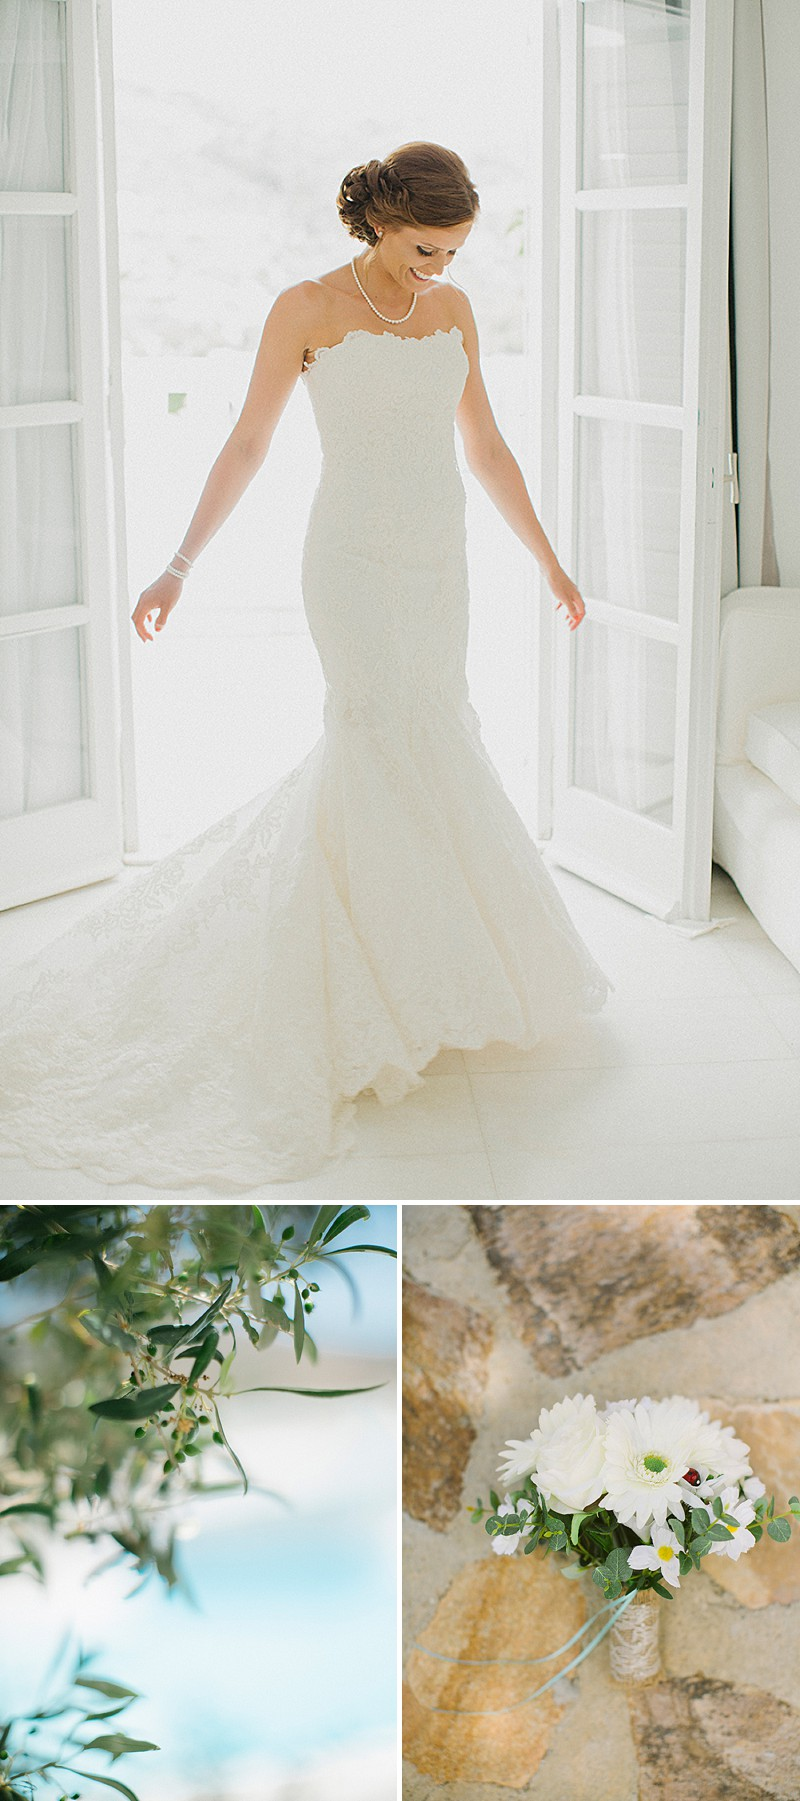 A Greek Destination Wedding On Tzamaria Beach In iOS With A Enzoani Dress And Peach Bridesmaid Dresses With Photography By Anna Roussos._0001